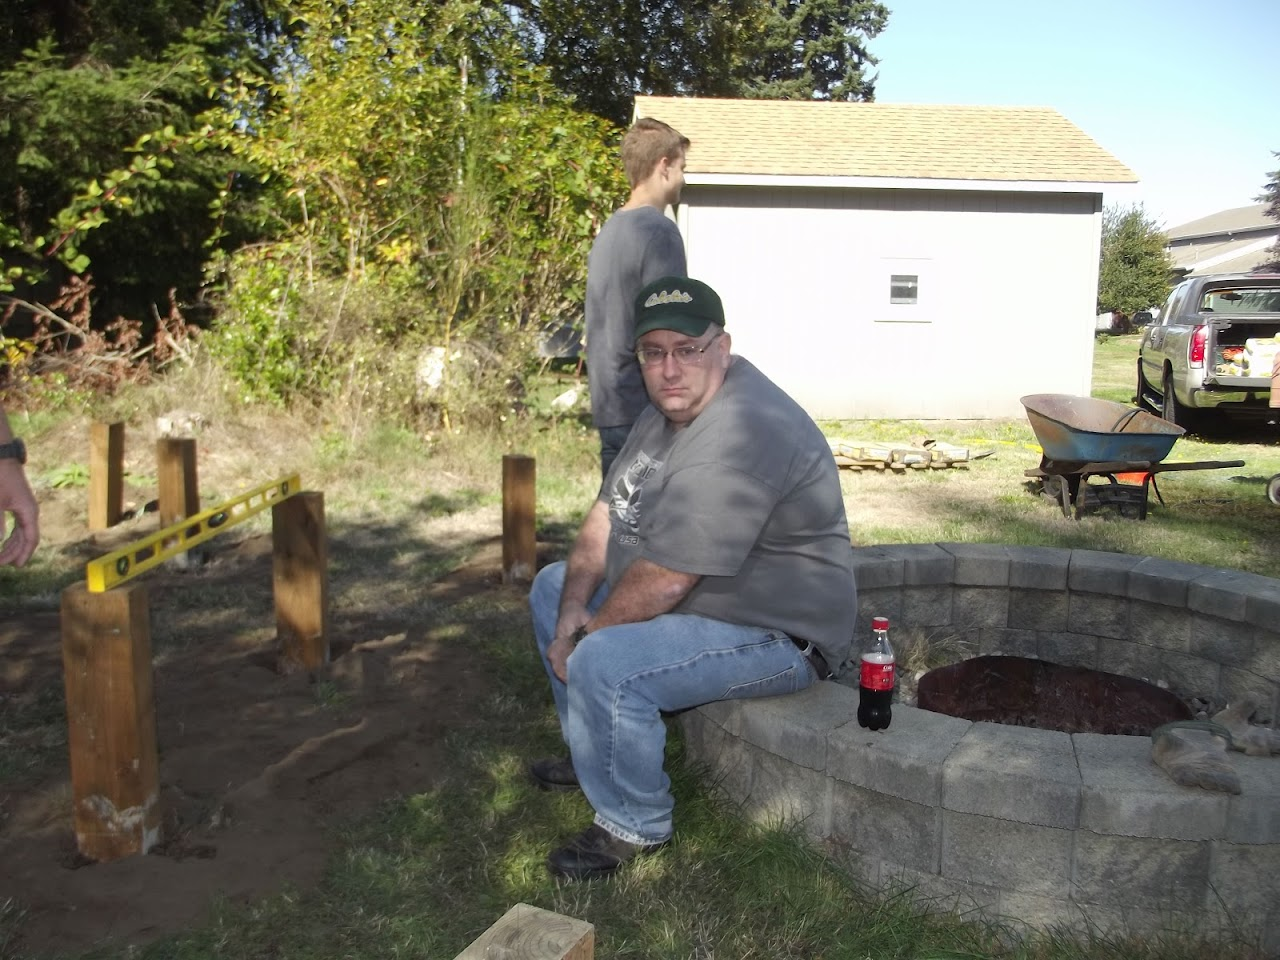 Carsons Eagle Project - October 2015 - DSCF3823.JPG